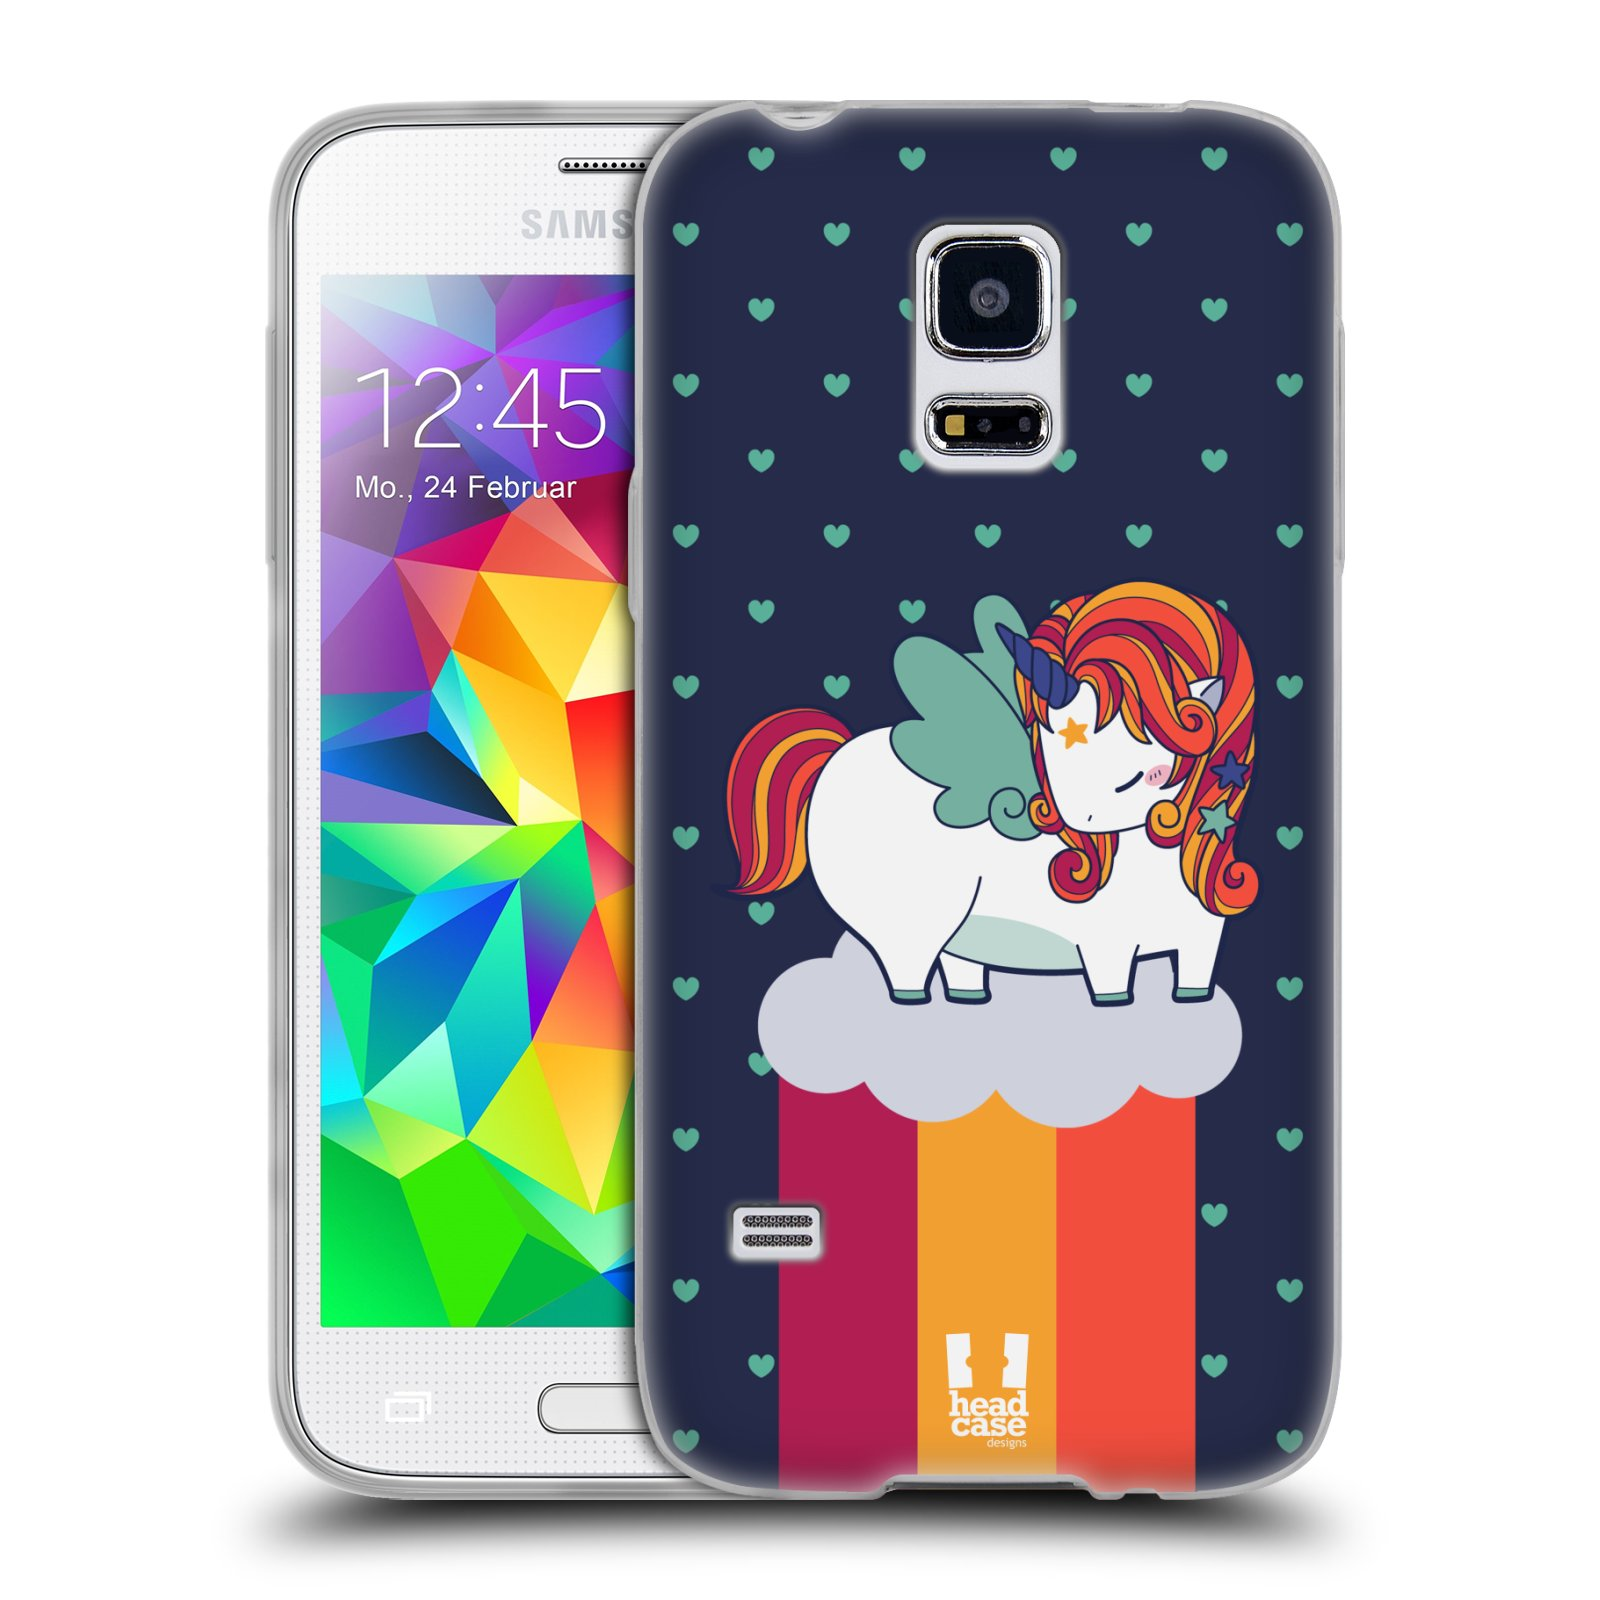 custodia samsung s5 mini